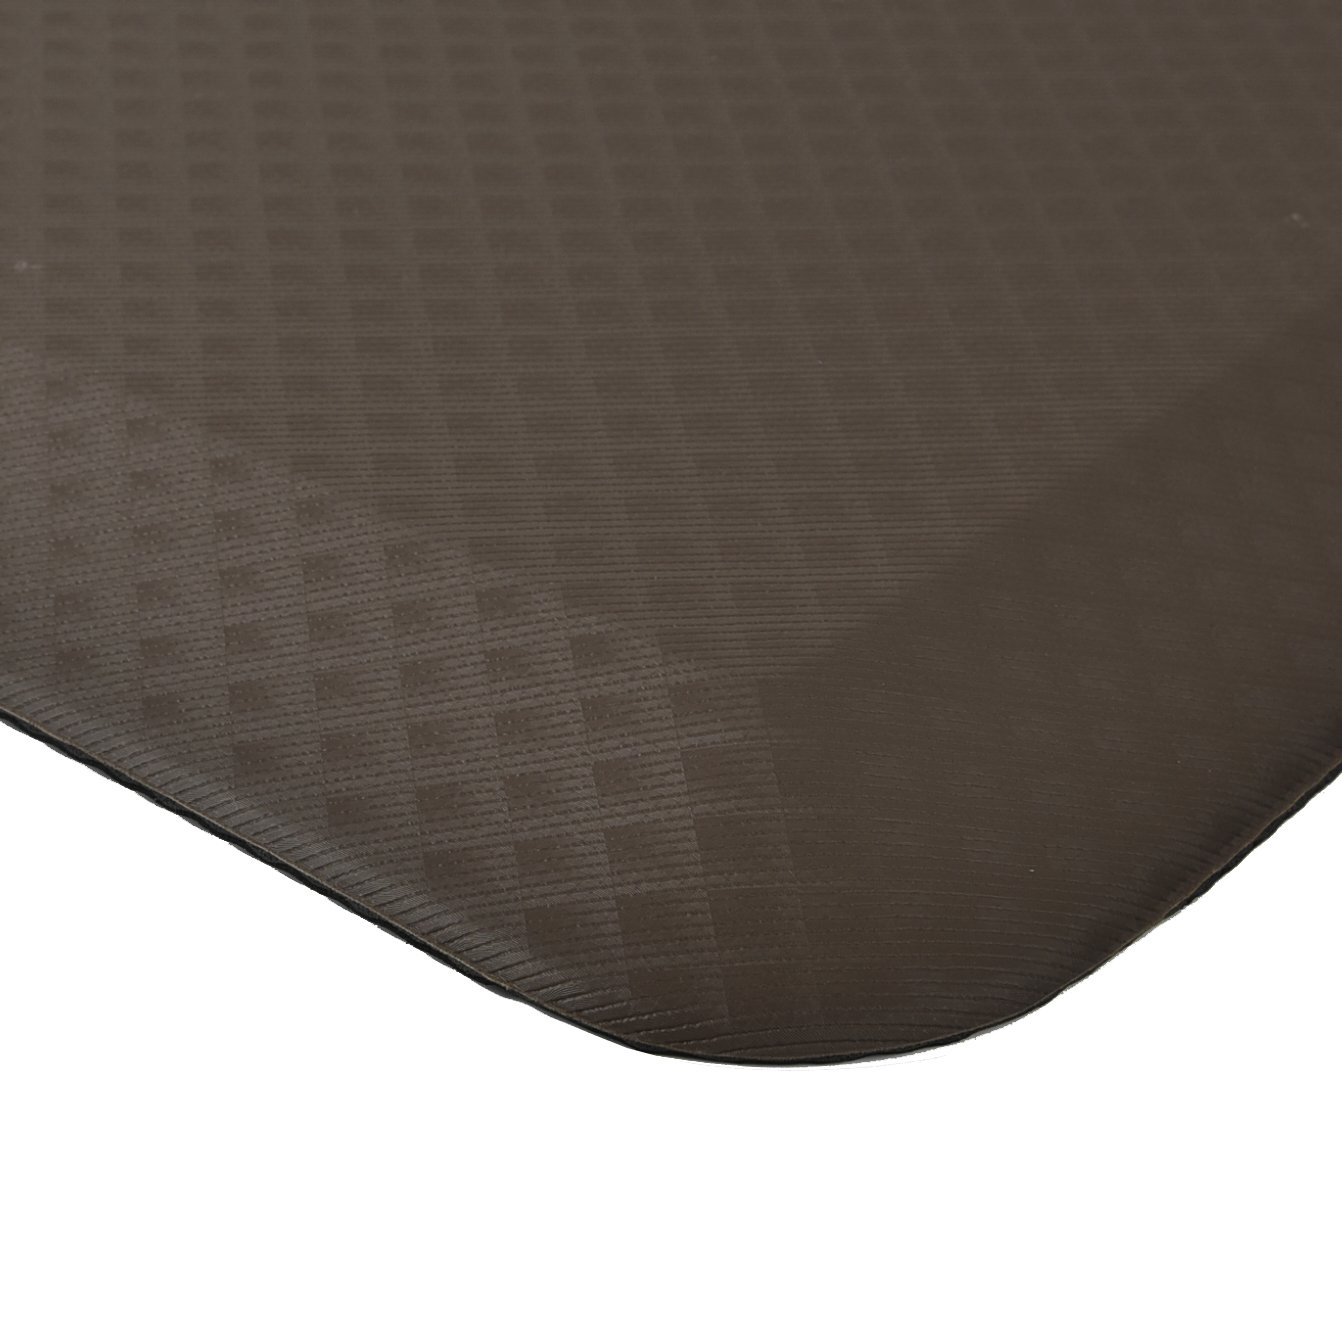 FOOTIGHT Non-Slip Anti-Fatigue 20 x 39 x 3/4' Eco-Friendly Waterproof Standing Comfort Mat, Perfect for for Office, Kitchen, Standing Desk(Black) afm-BK-2039a